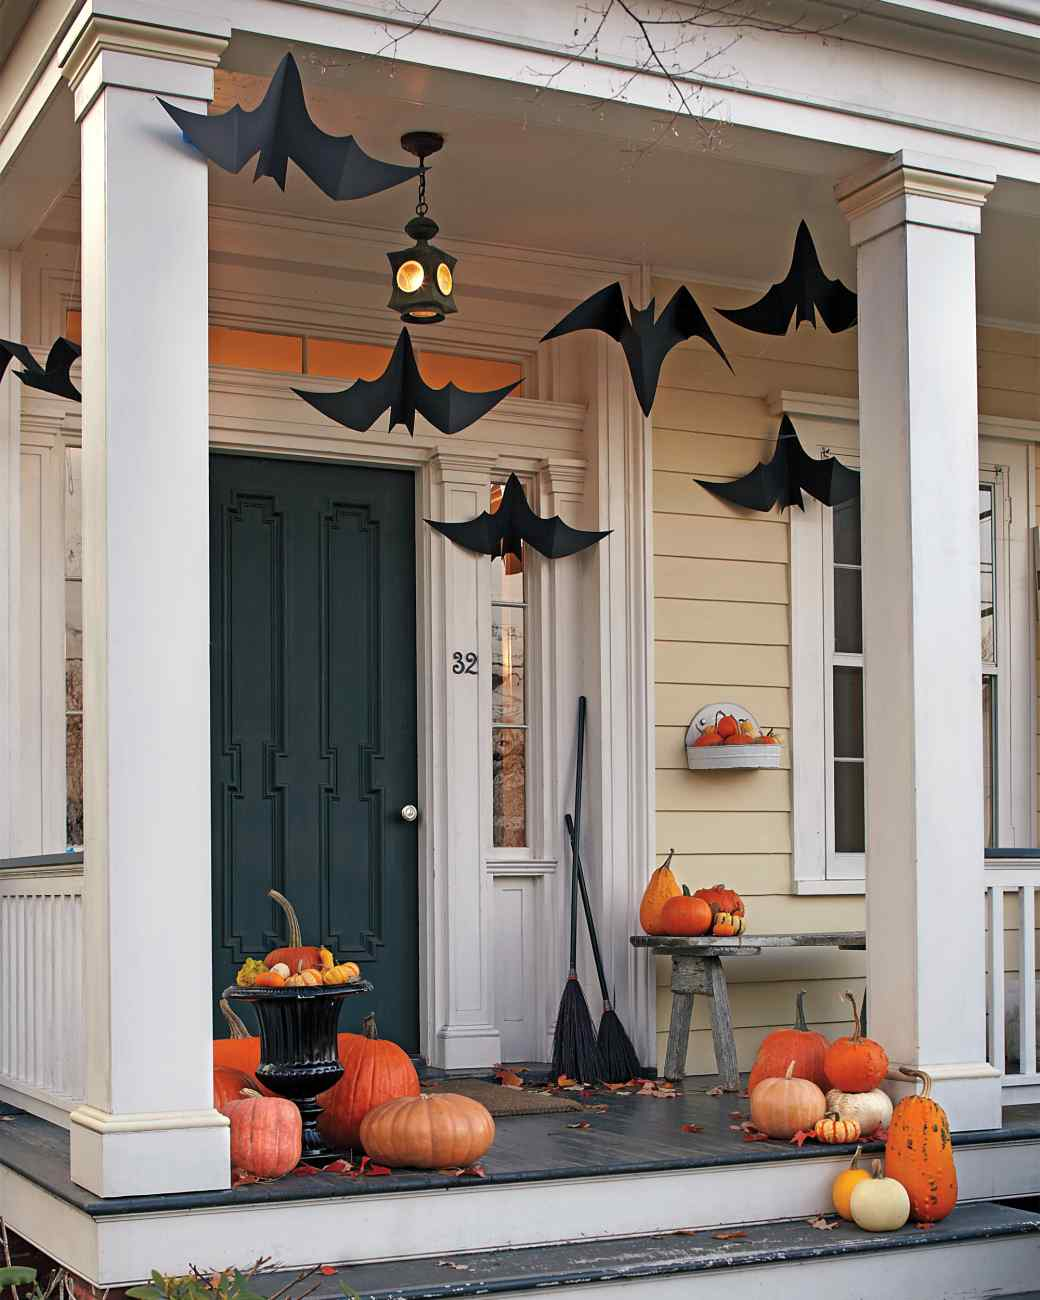 Porch Bat Decorations